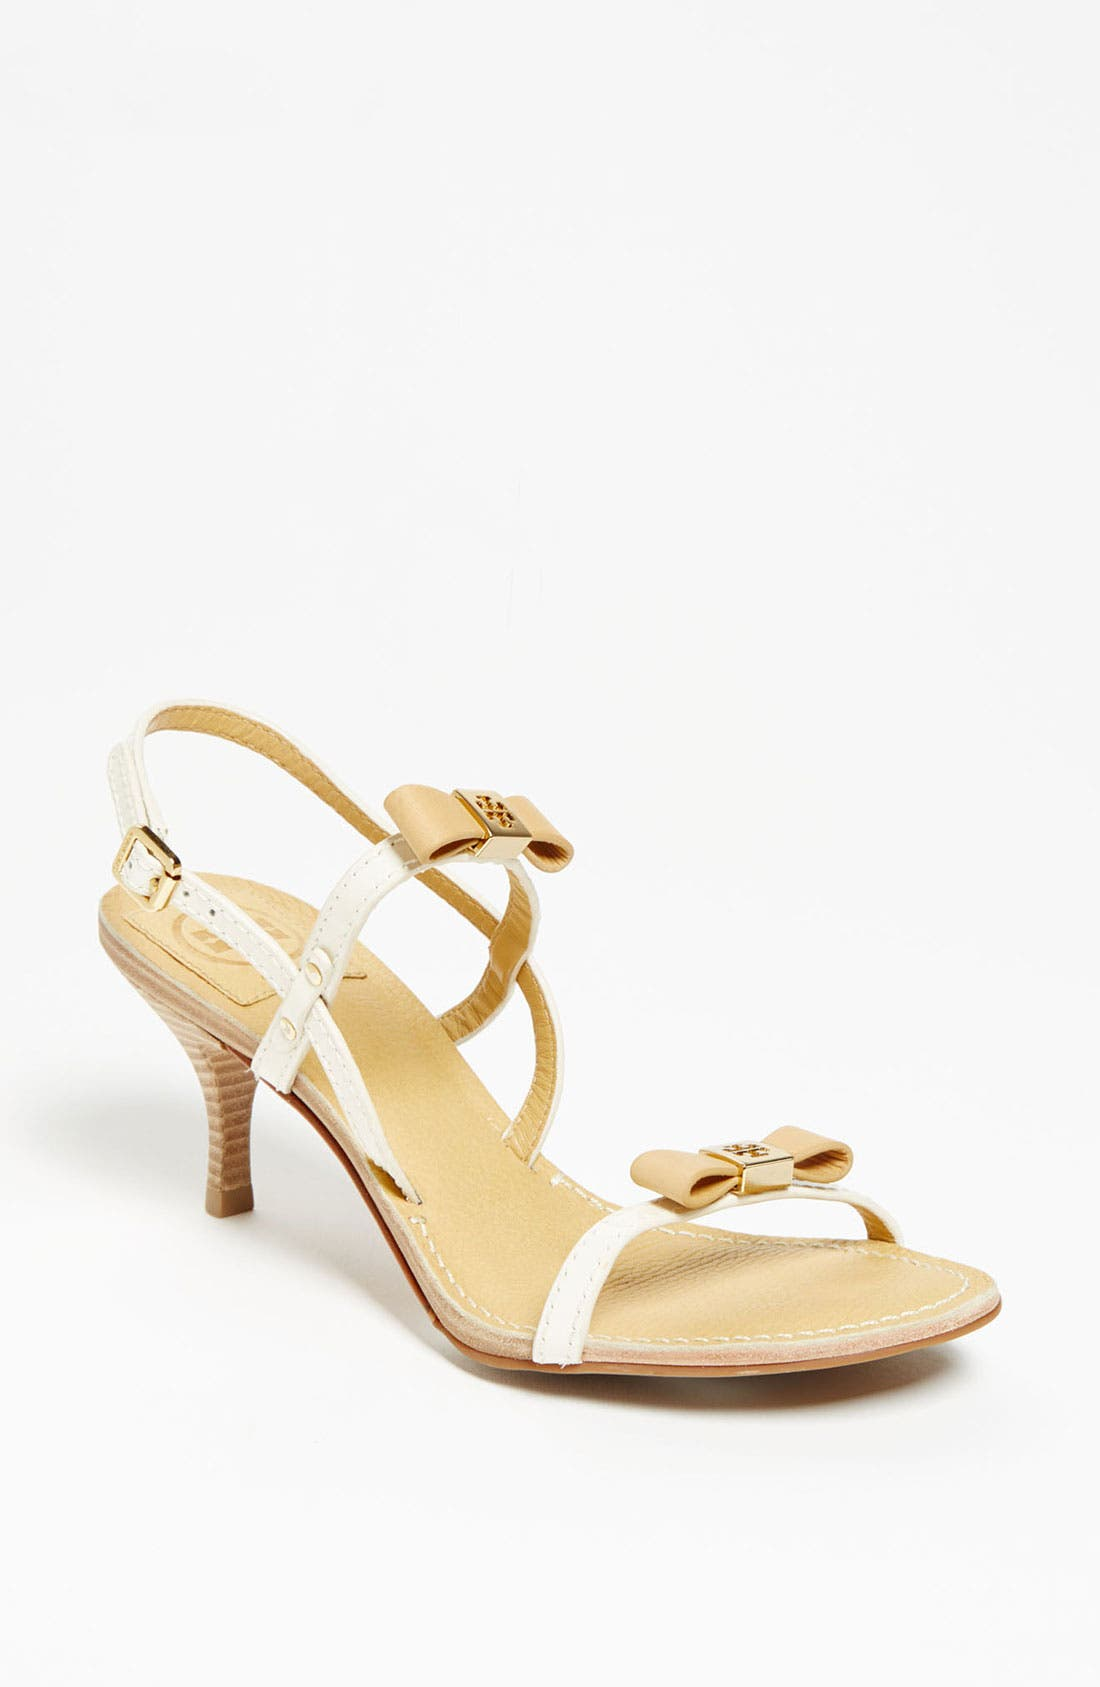 Main Image - Tory Burch 'Kailey' Sandal